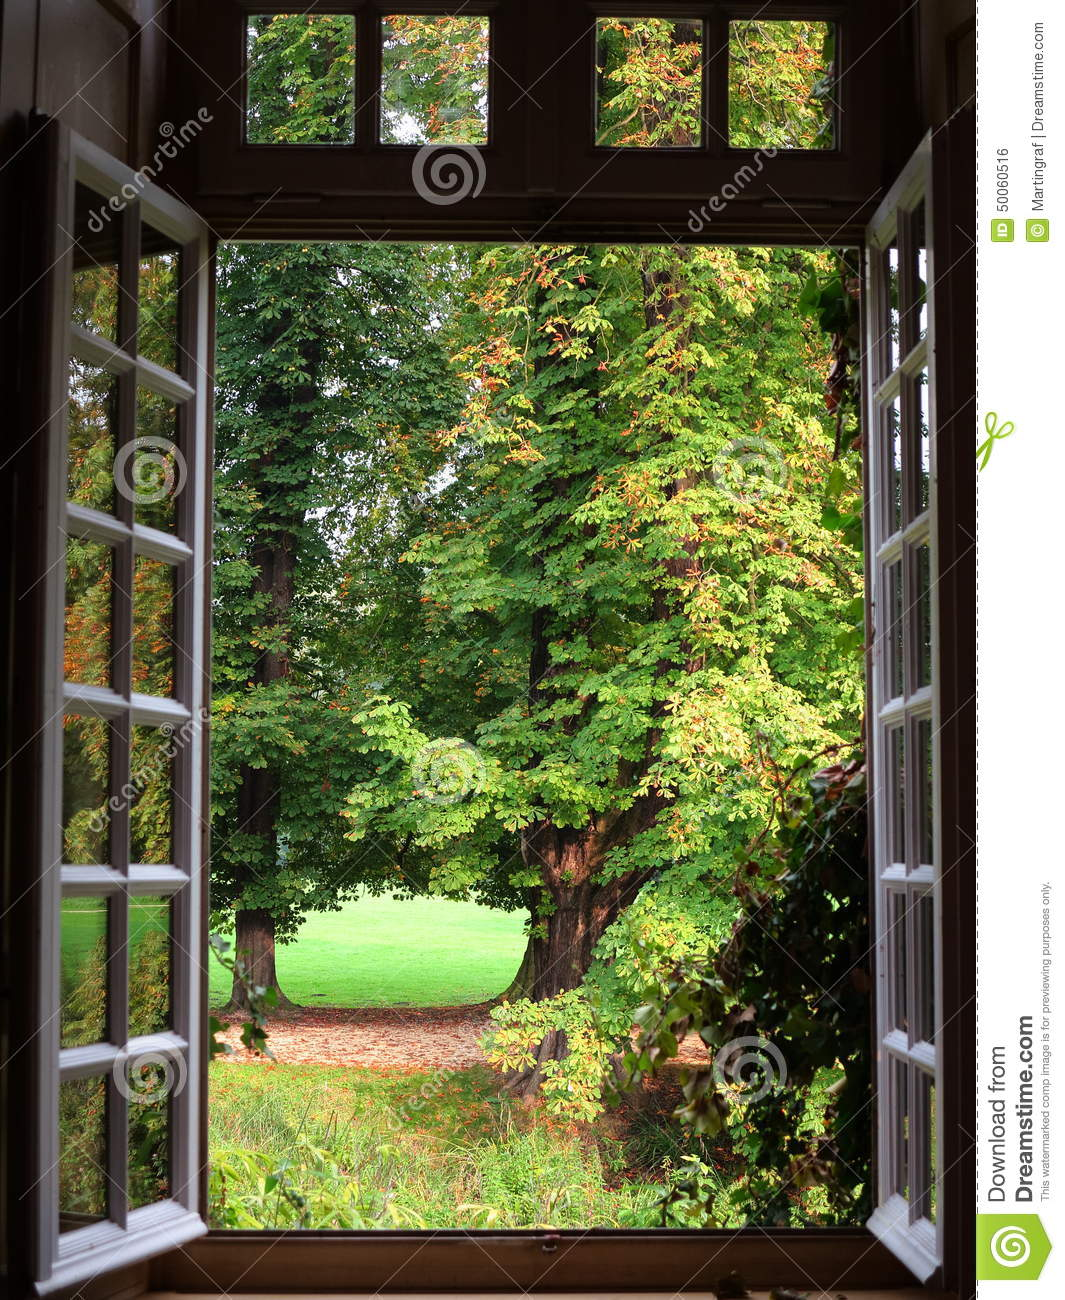 Open window of mansion airing stock photo image of for Par la fenetre ouverte bonjour